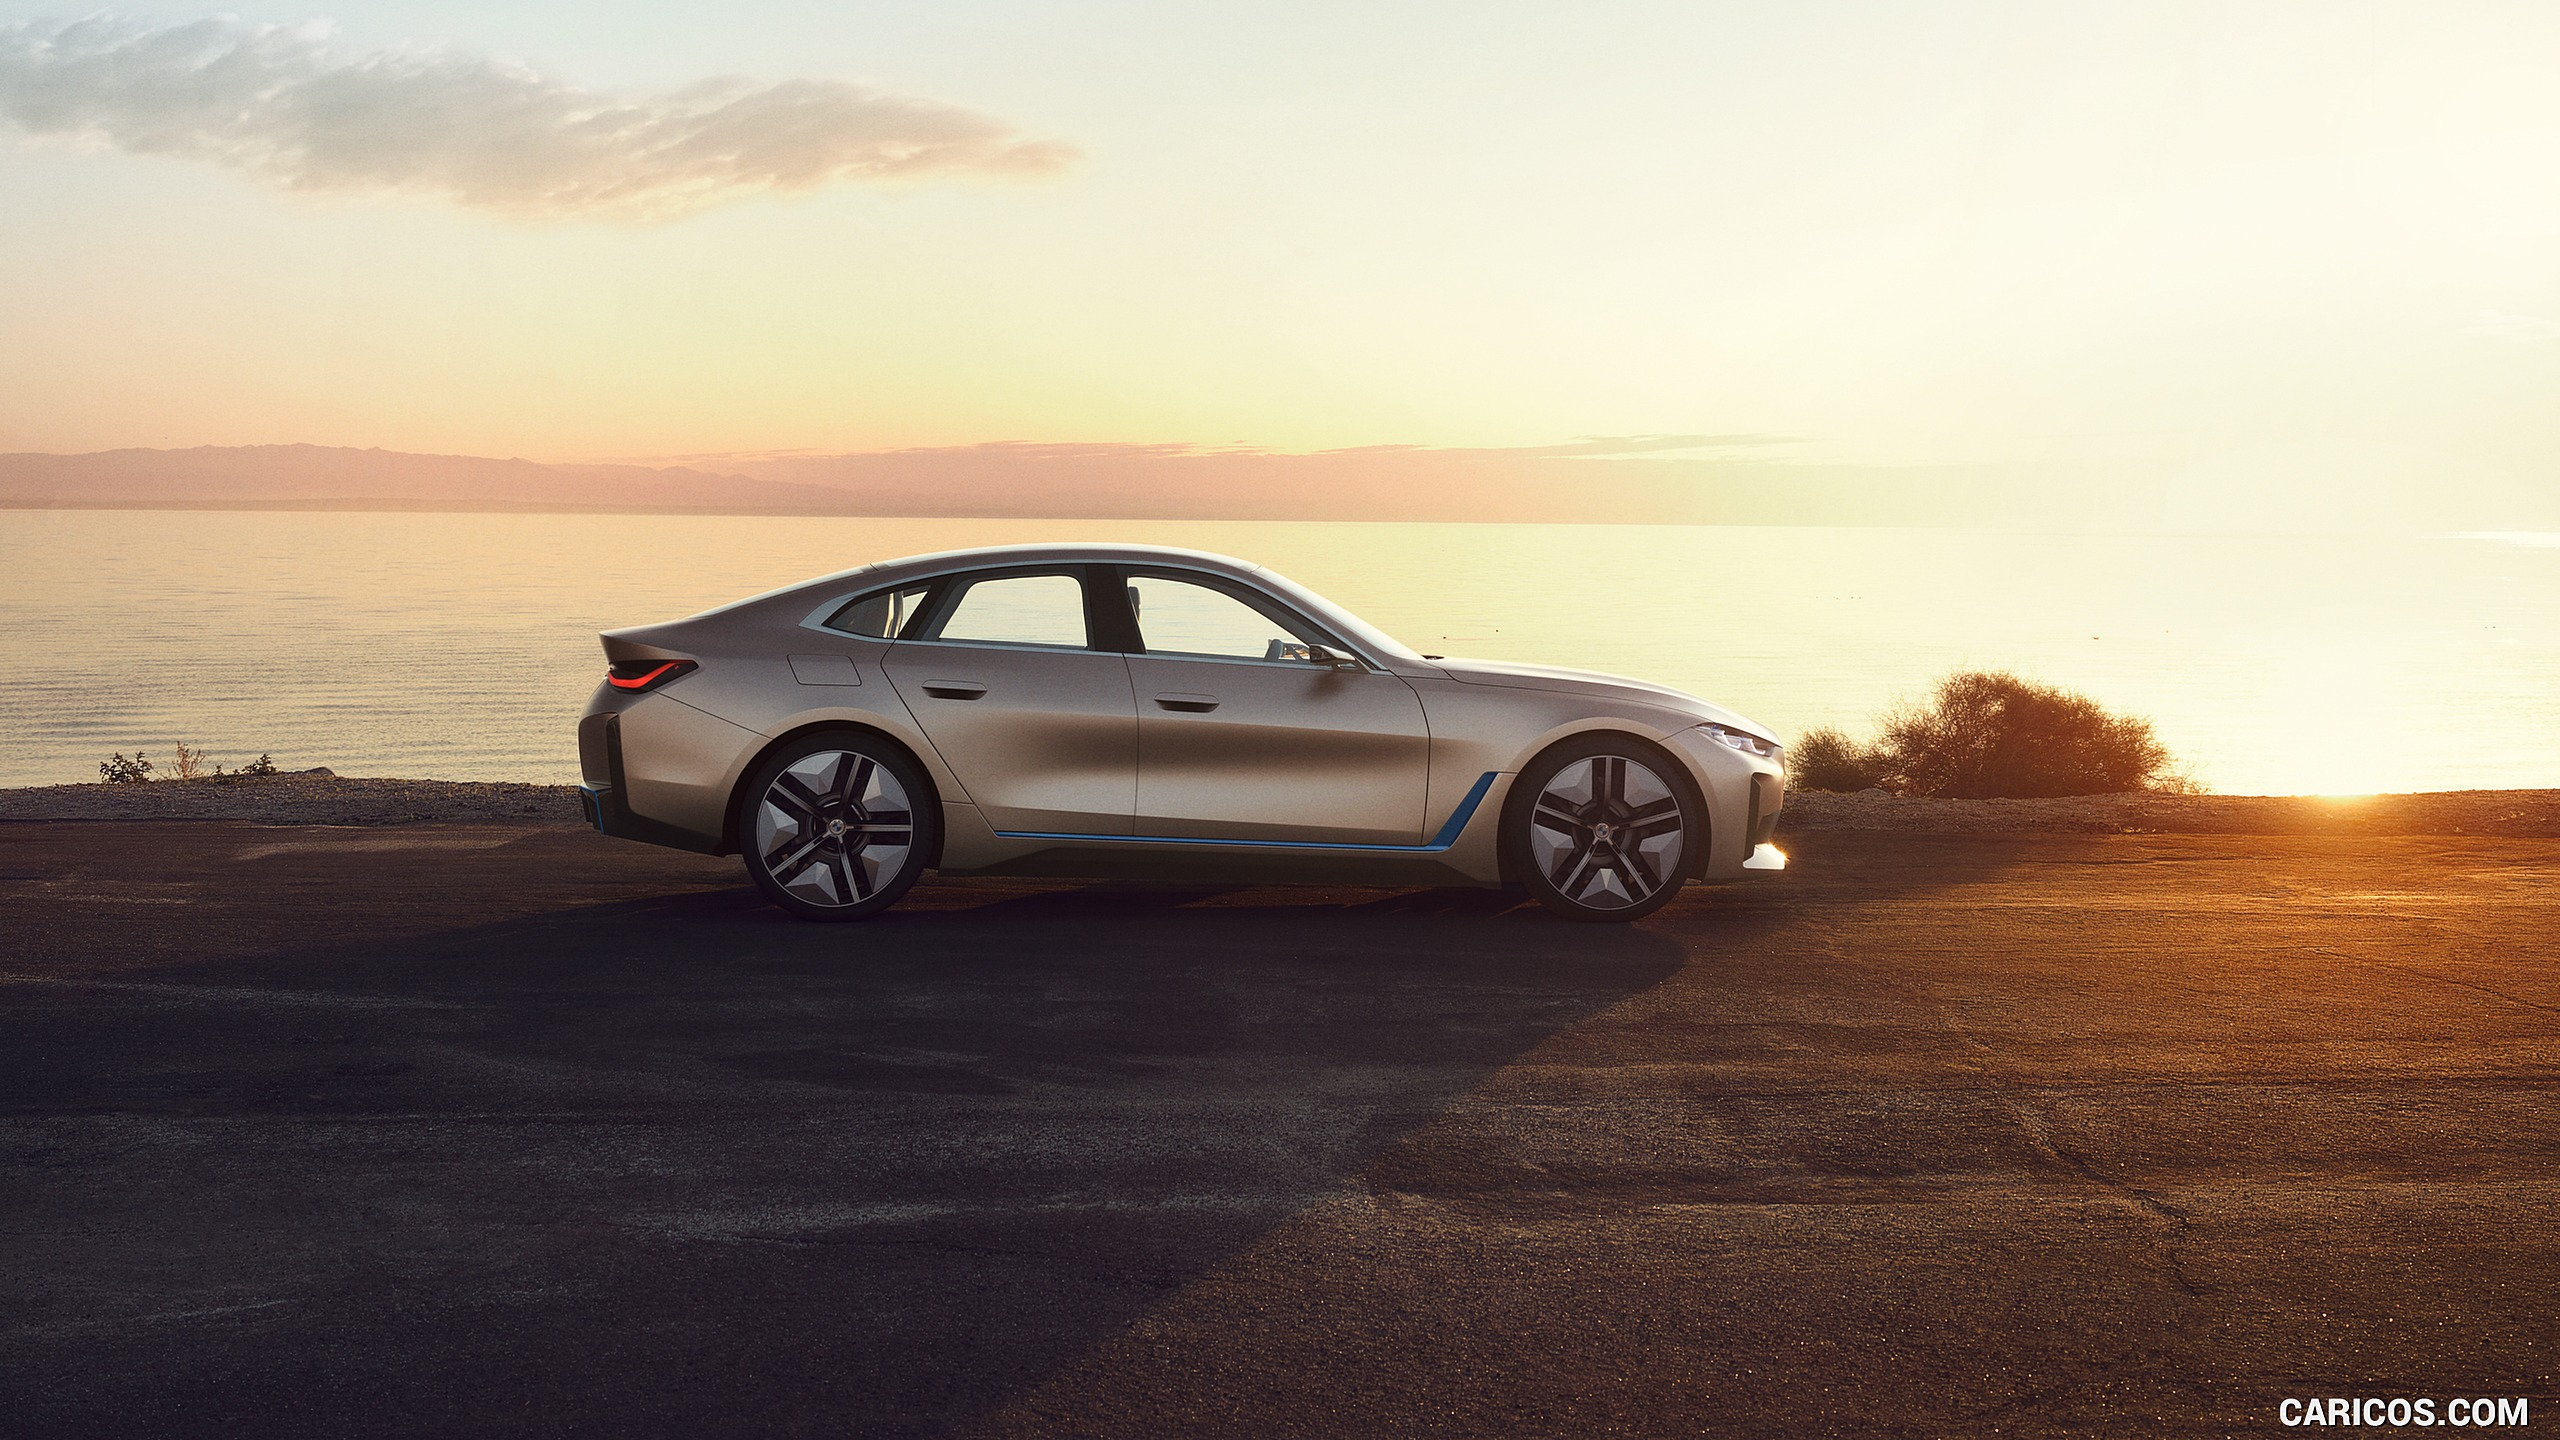 2020 bmw i4 concept wallpapers | supercars